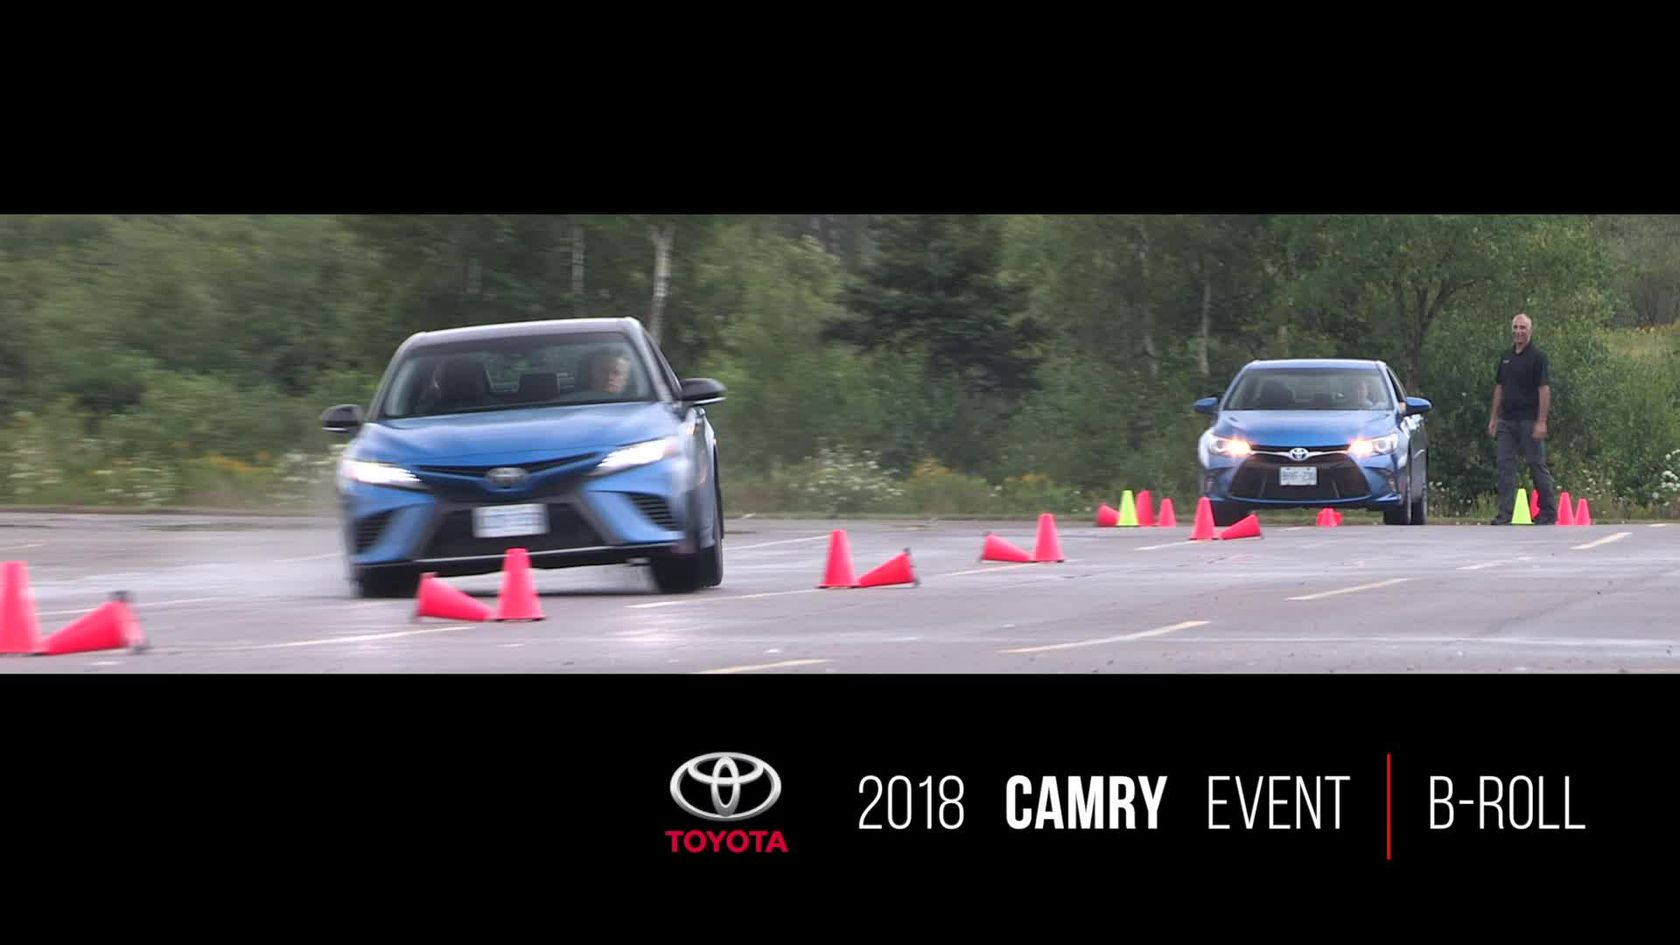 2018 Toyota Camry Event